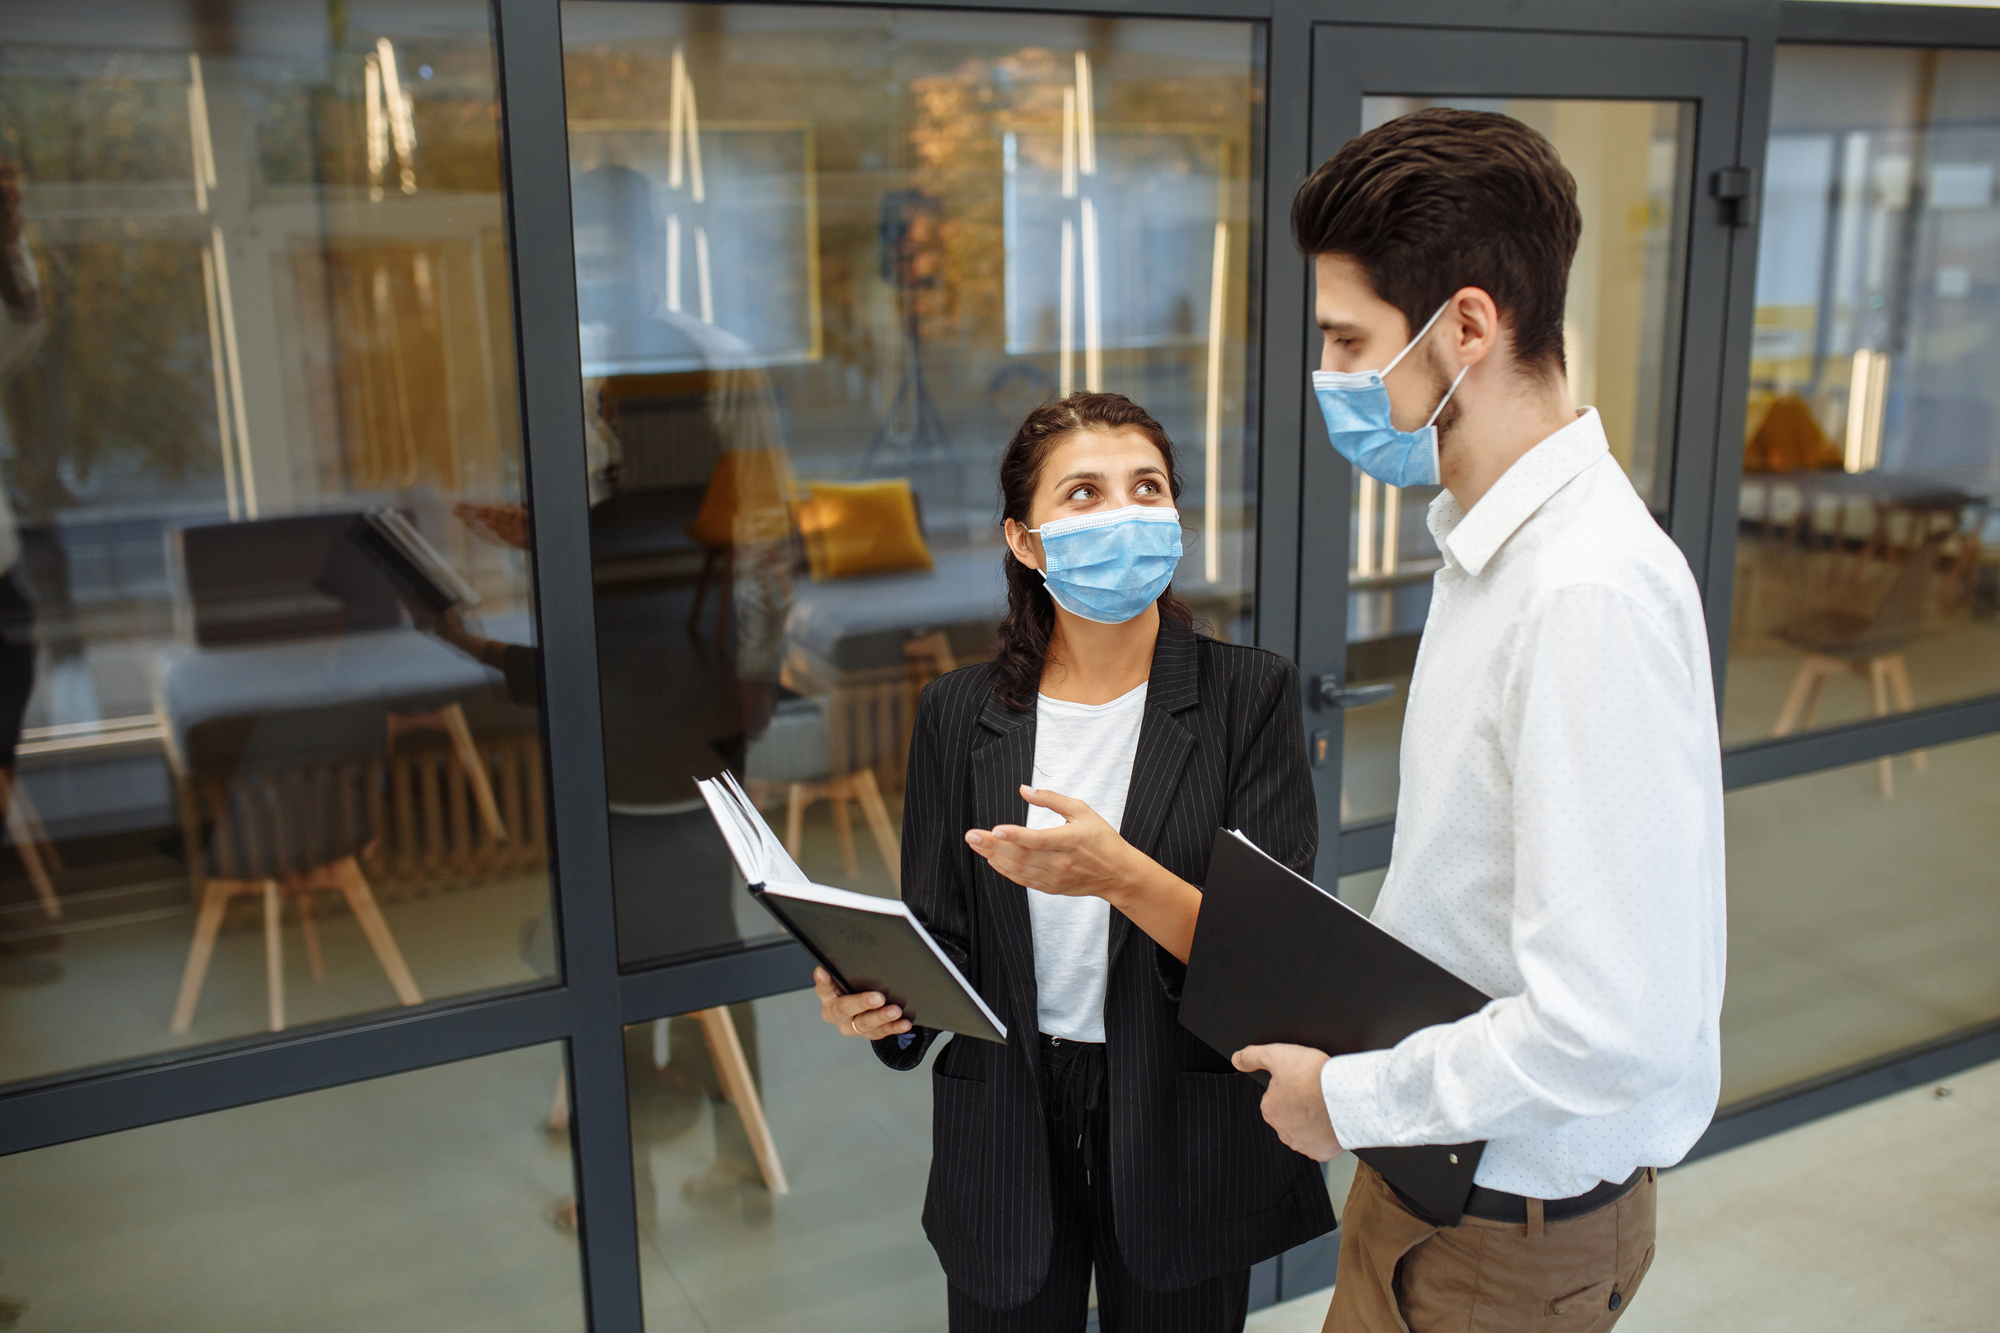 girl-and-guy-at-office-with-masks